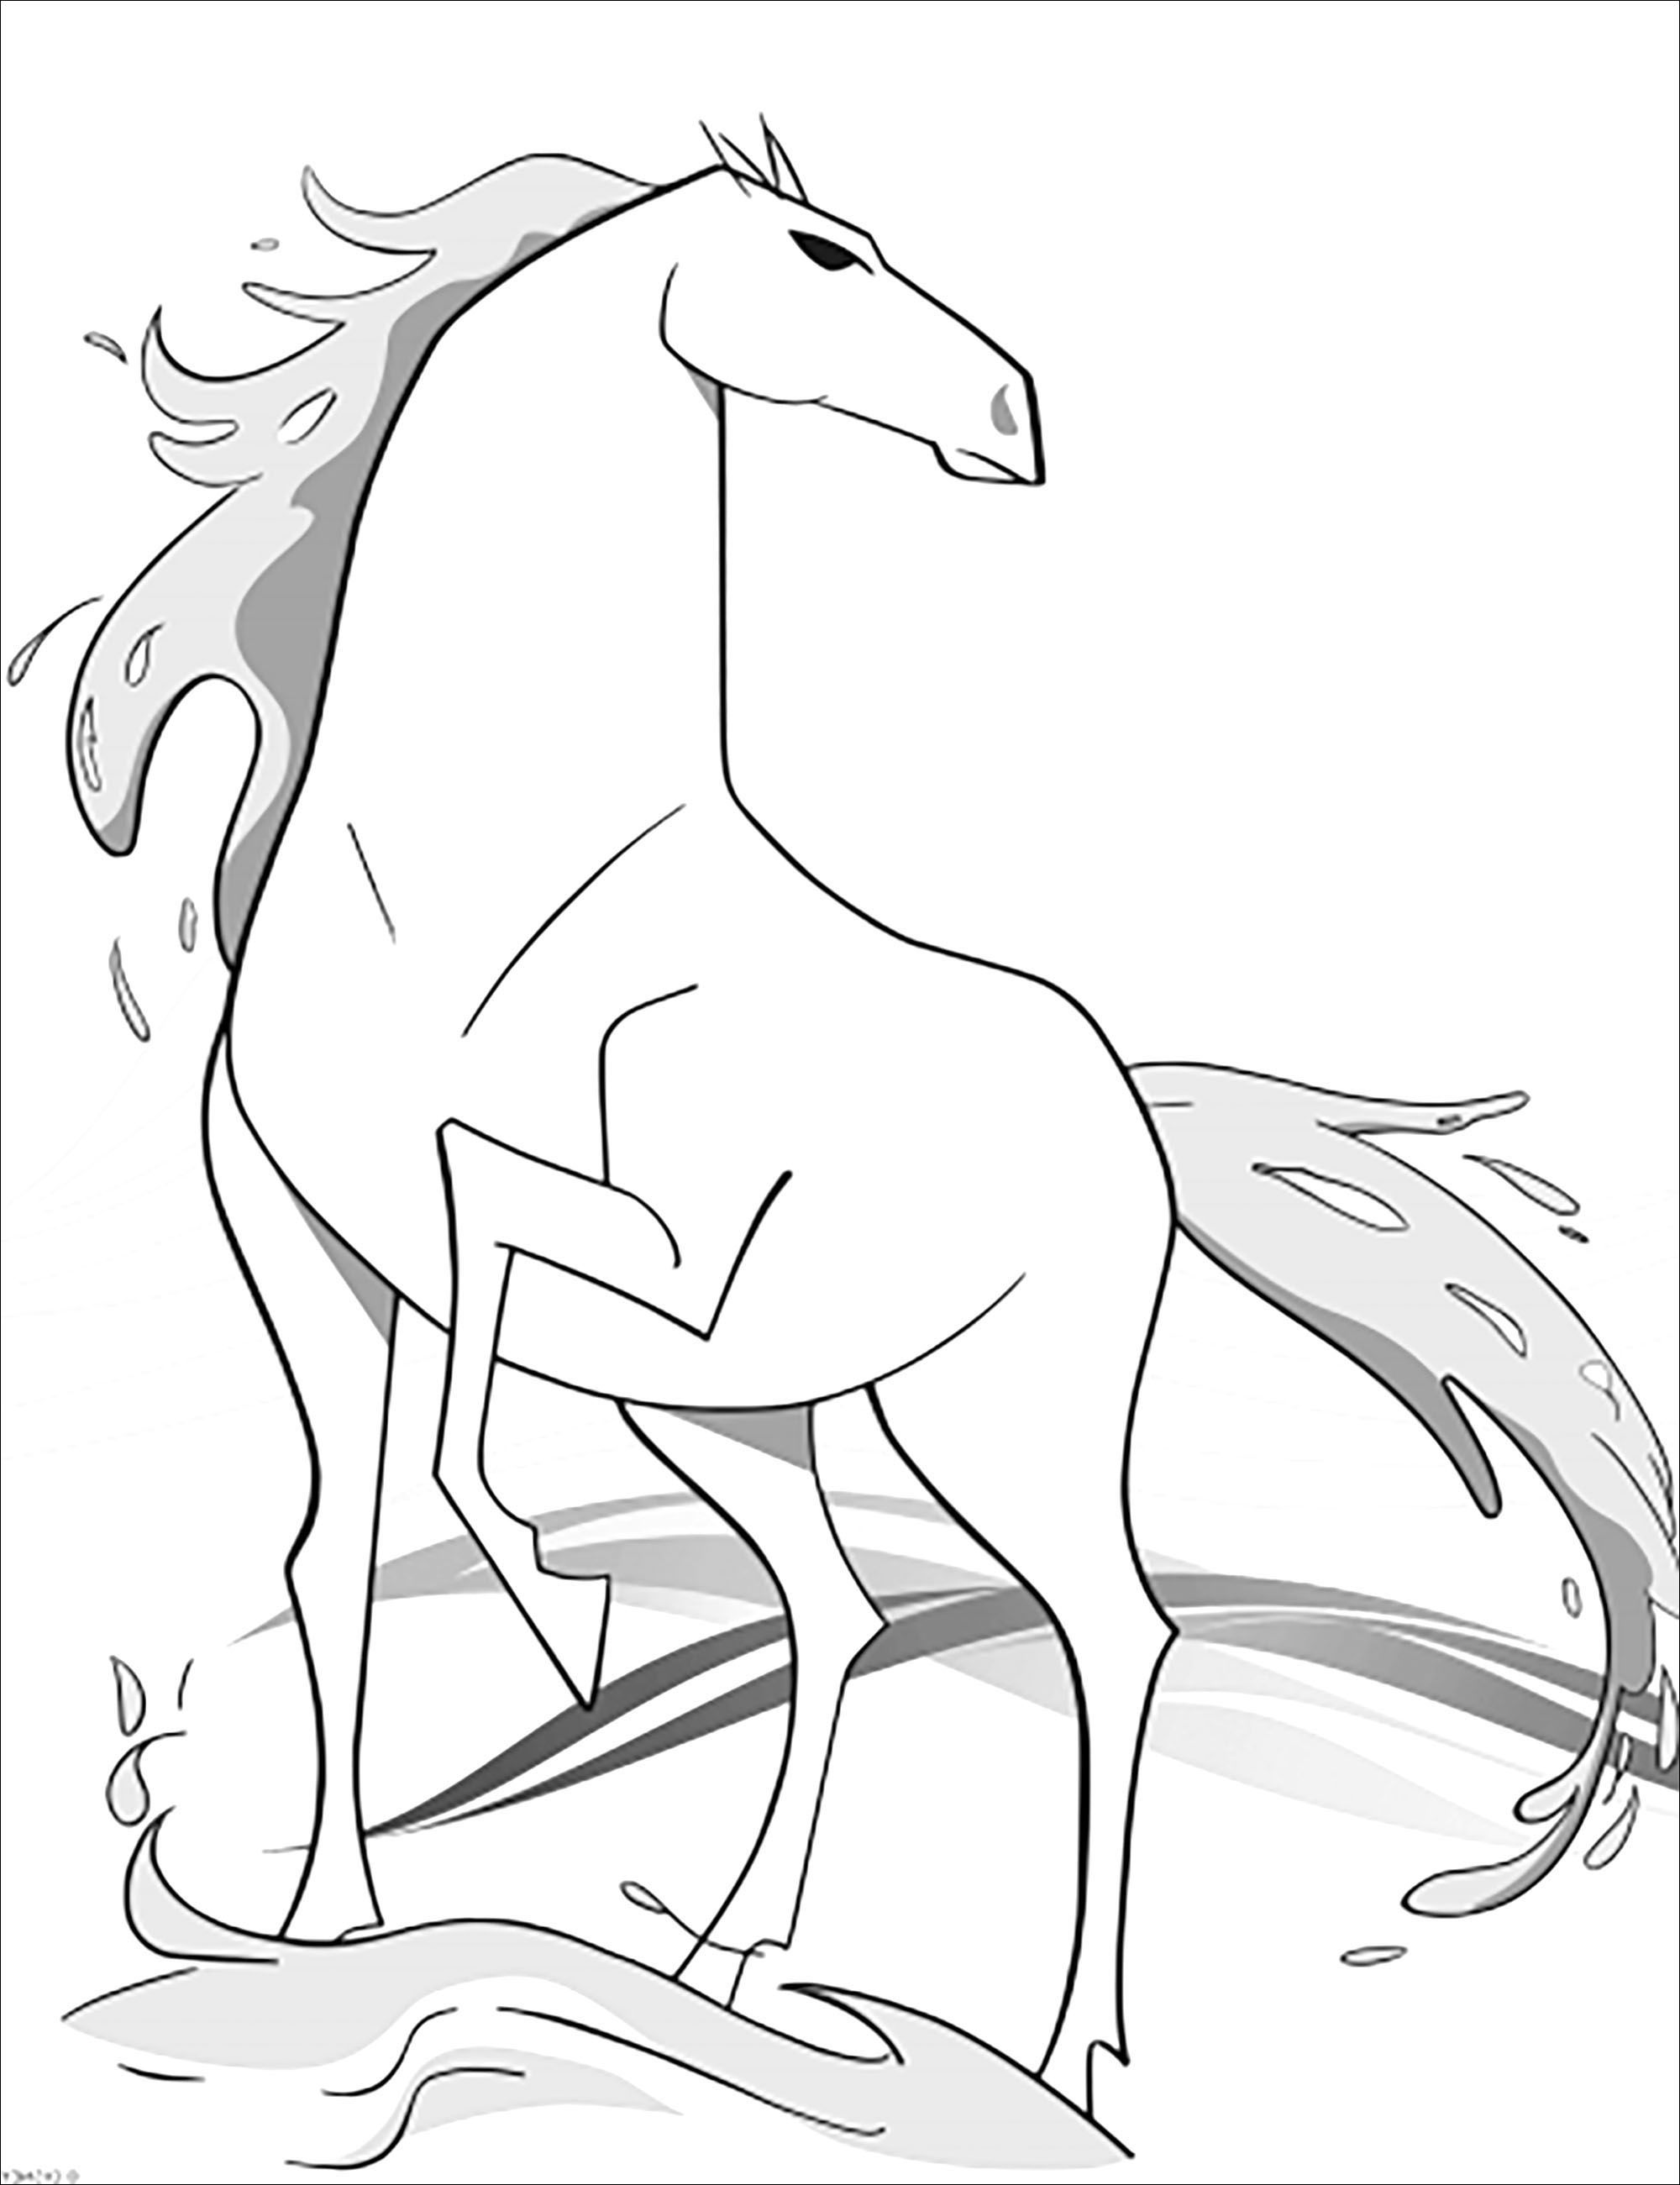 Frozen 2 Nokk Without Text Beautiful Frozen 2 Coloring Page To Print And Color With Nokk From The Gallery F Frozen Para Pintar Dibujos De Frozen Dibujos